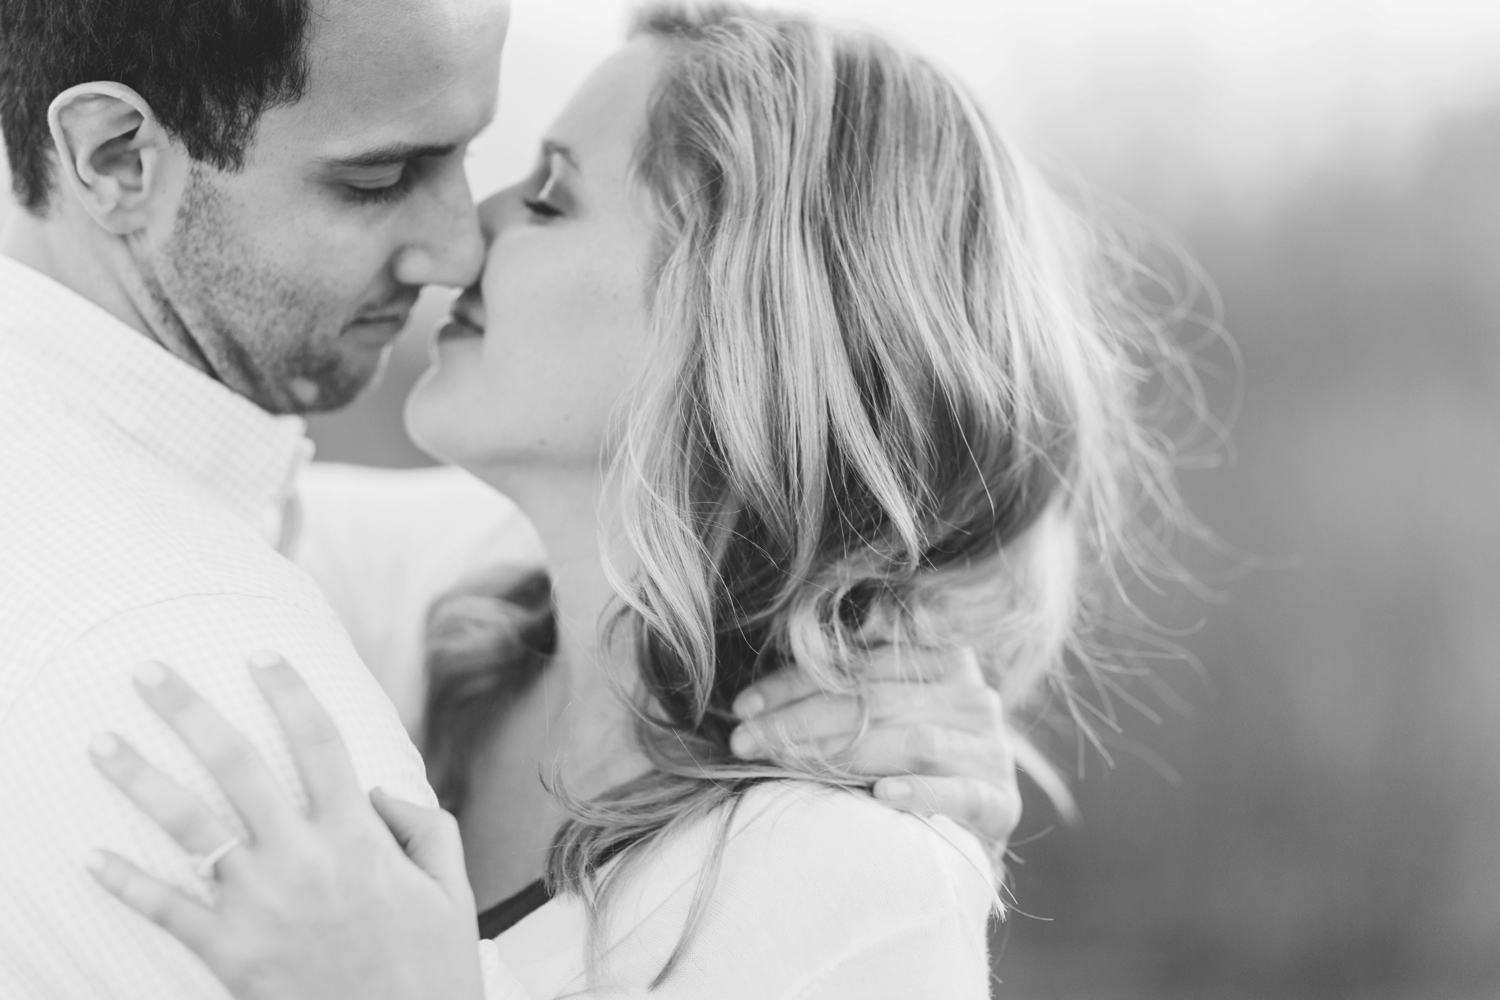 indianapolis_wedding_photographer_golden_hour_engagement_chloe_luka_photography_6147.jpg